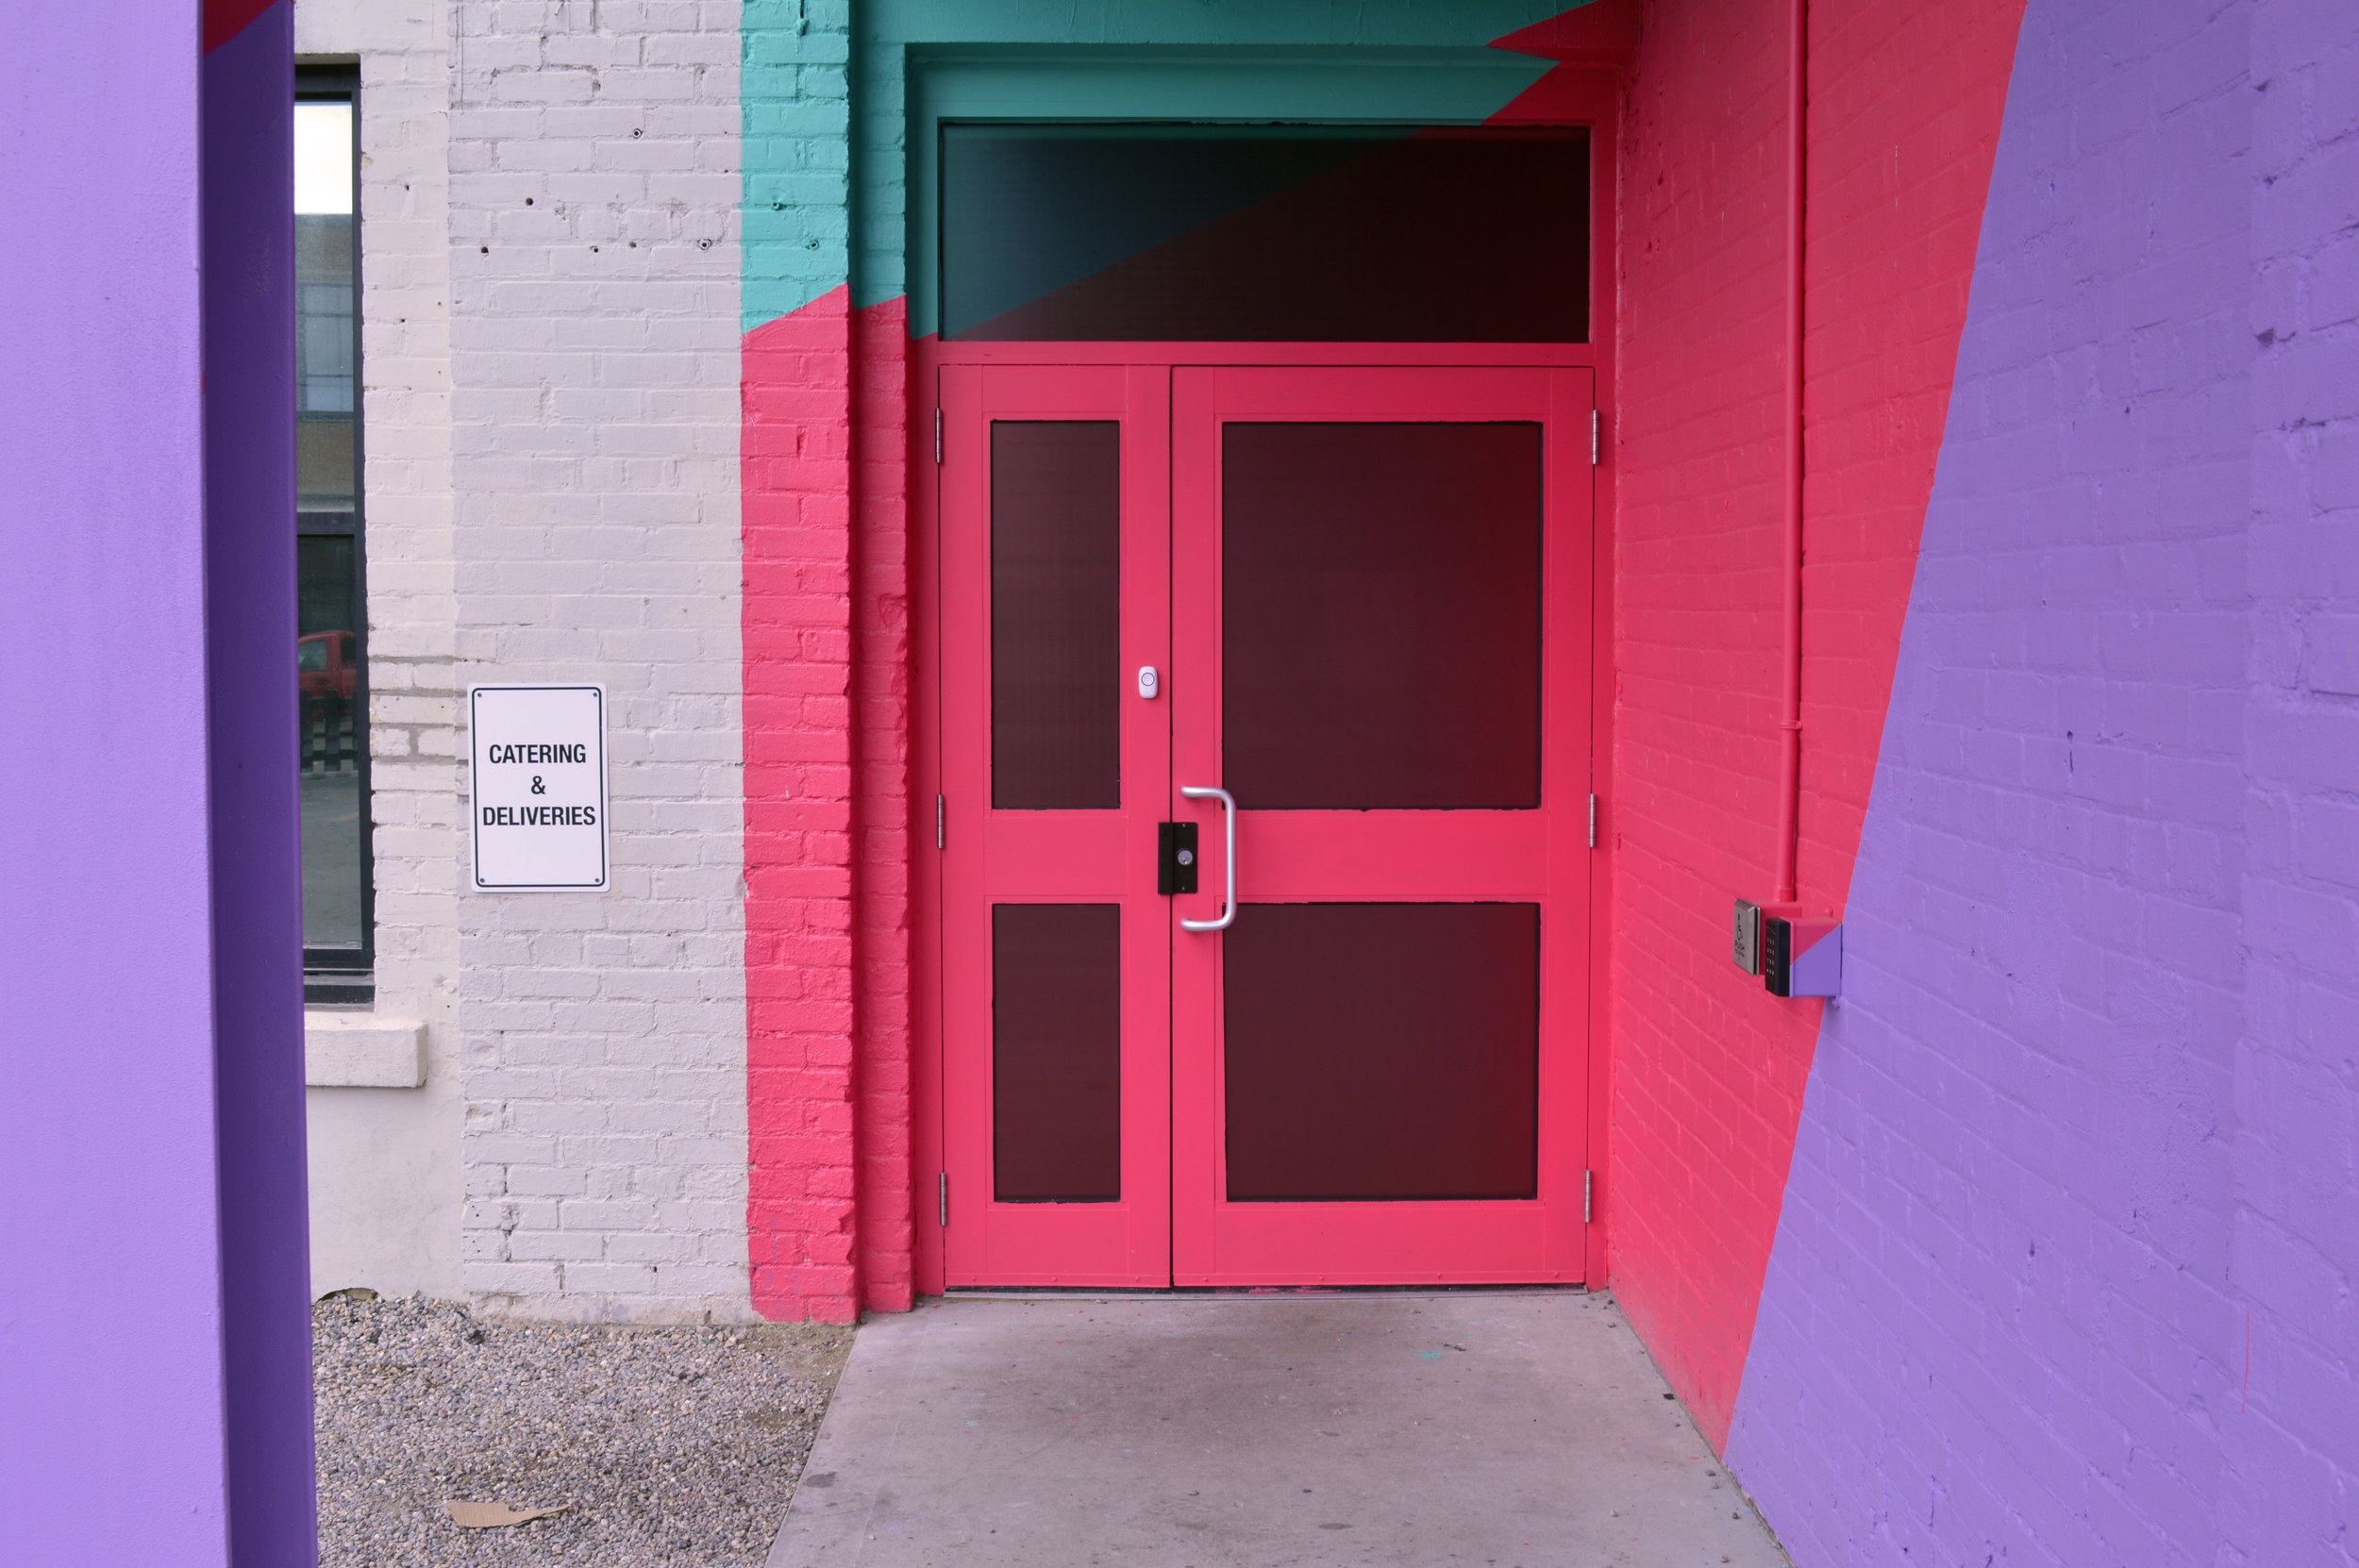 enterance-main-door.JPG